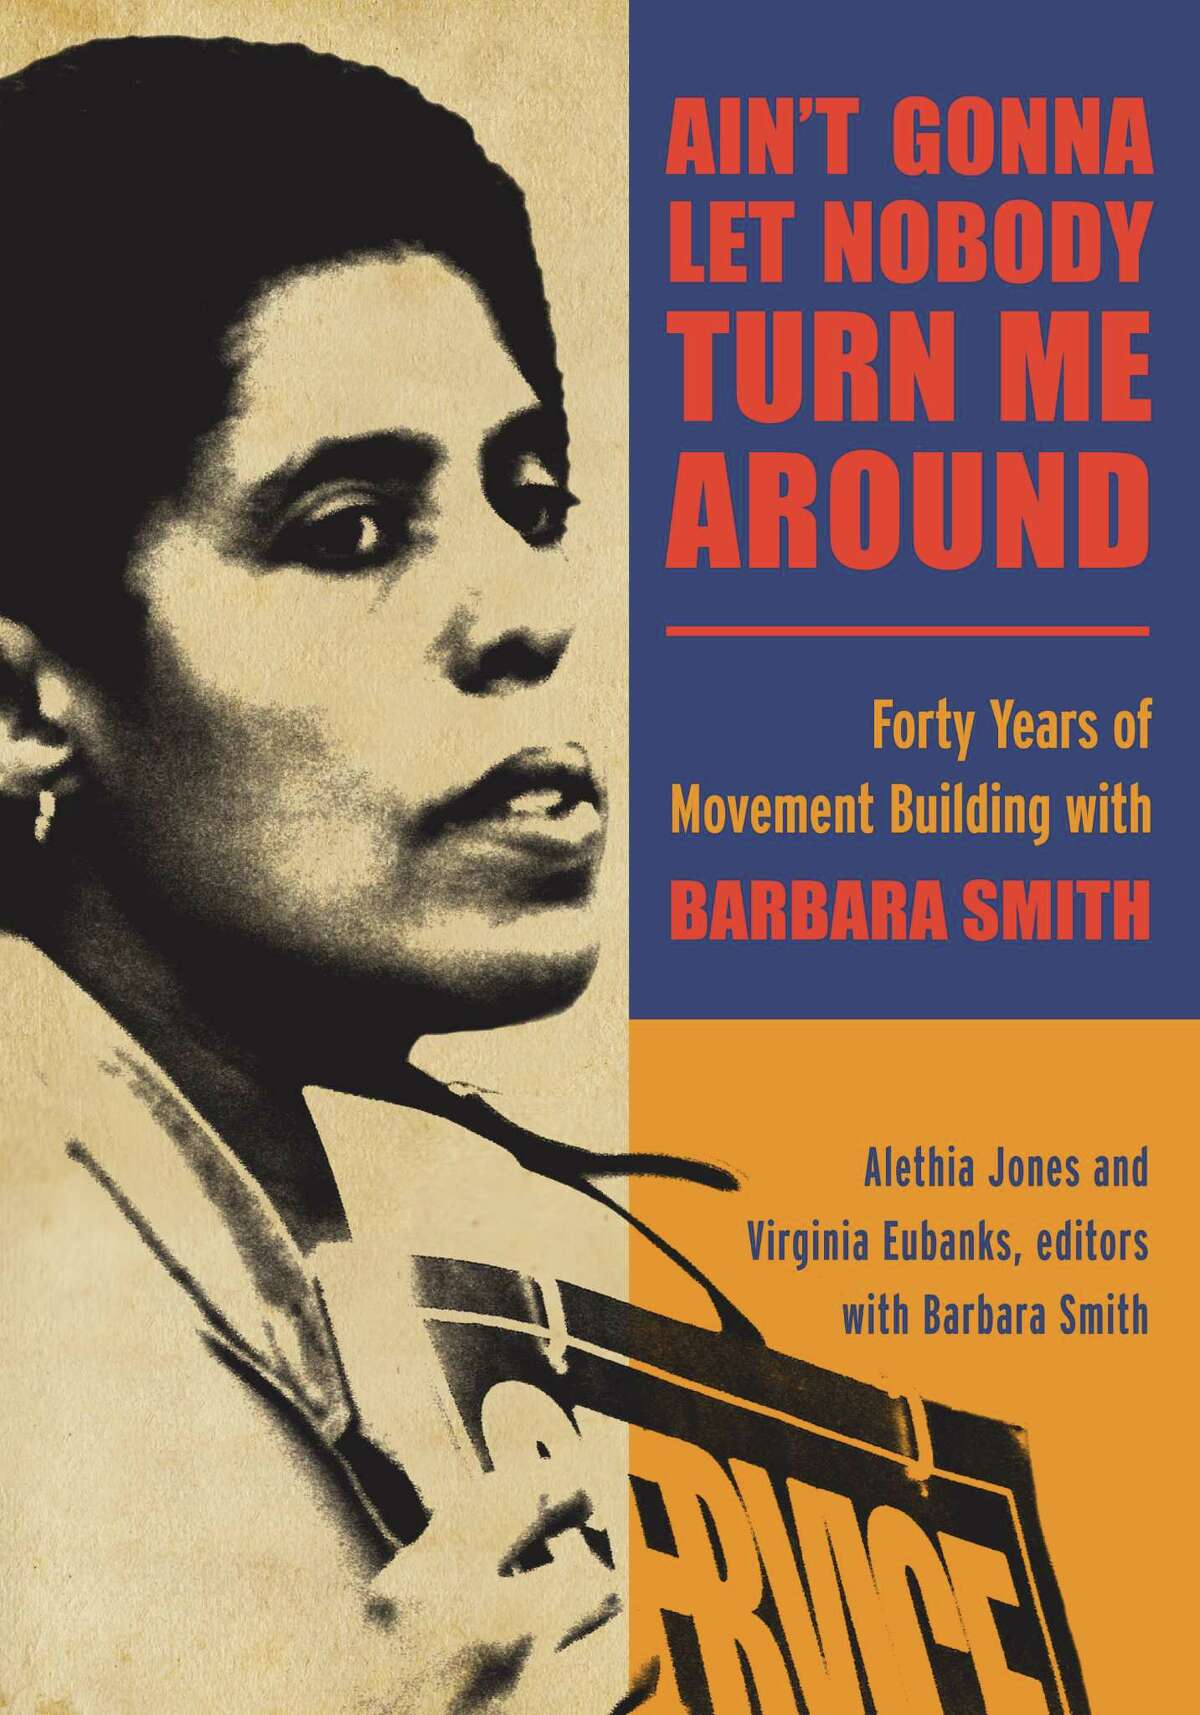 """""""Ain't Gonna Let Nobody Turn Me Around: Forty Years of Movement Building with Barbara Smith"""" by Alethia Jones and Virginia Eubanks, editors, with Barbara Smith (Courtesy of the authors)"""